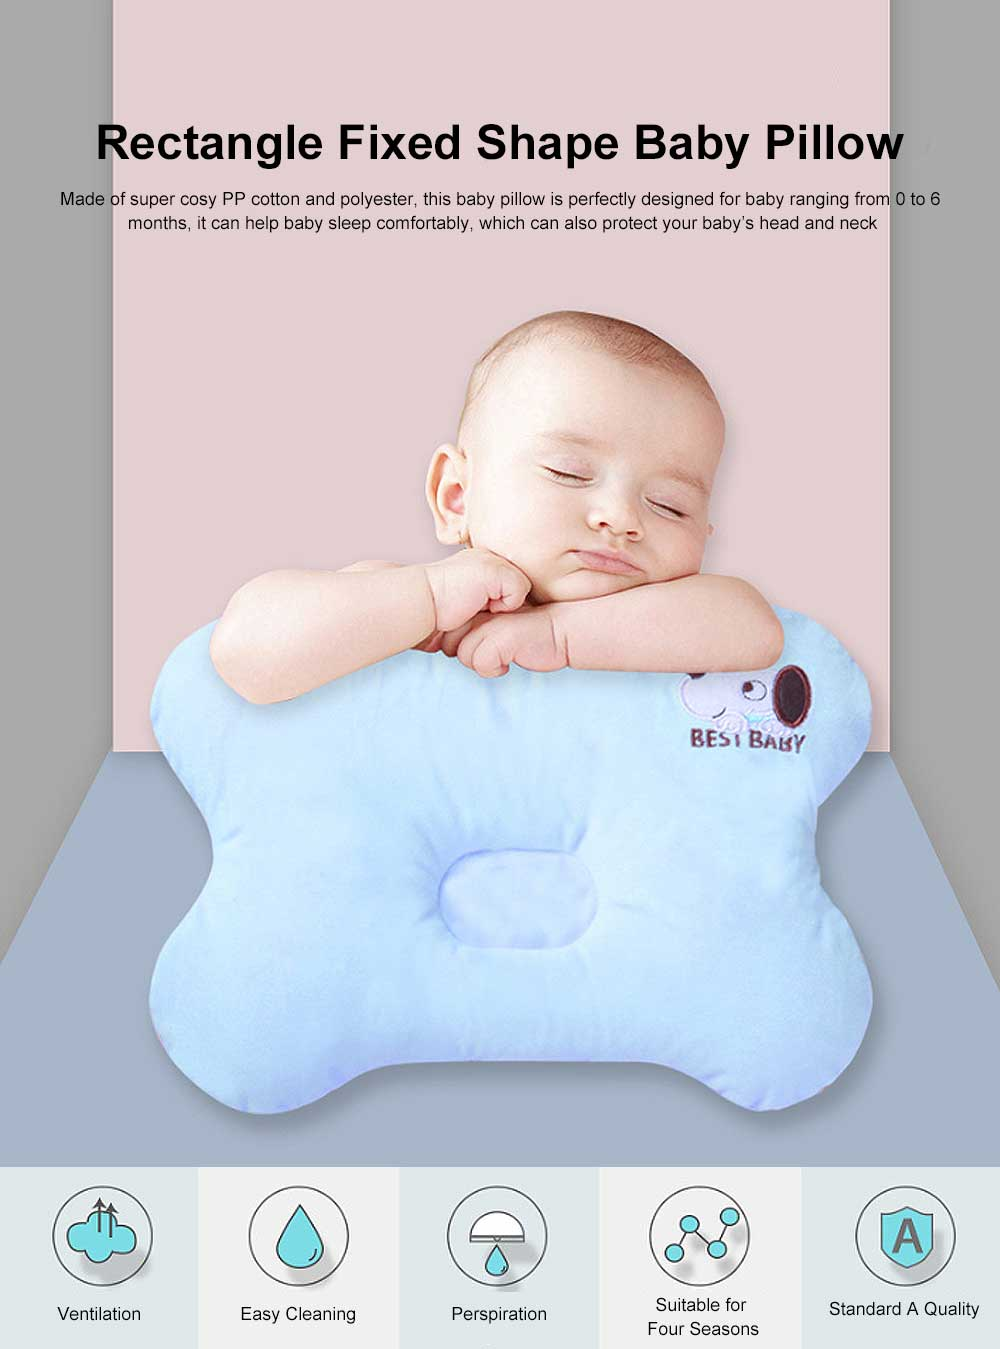 Baby Super Soft Pillow Rectangle Fixed Shape New-Born Baby Pillow Neck Head Protection 0